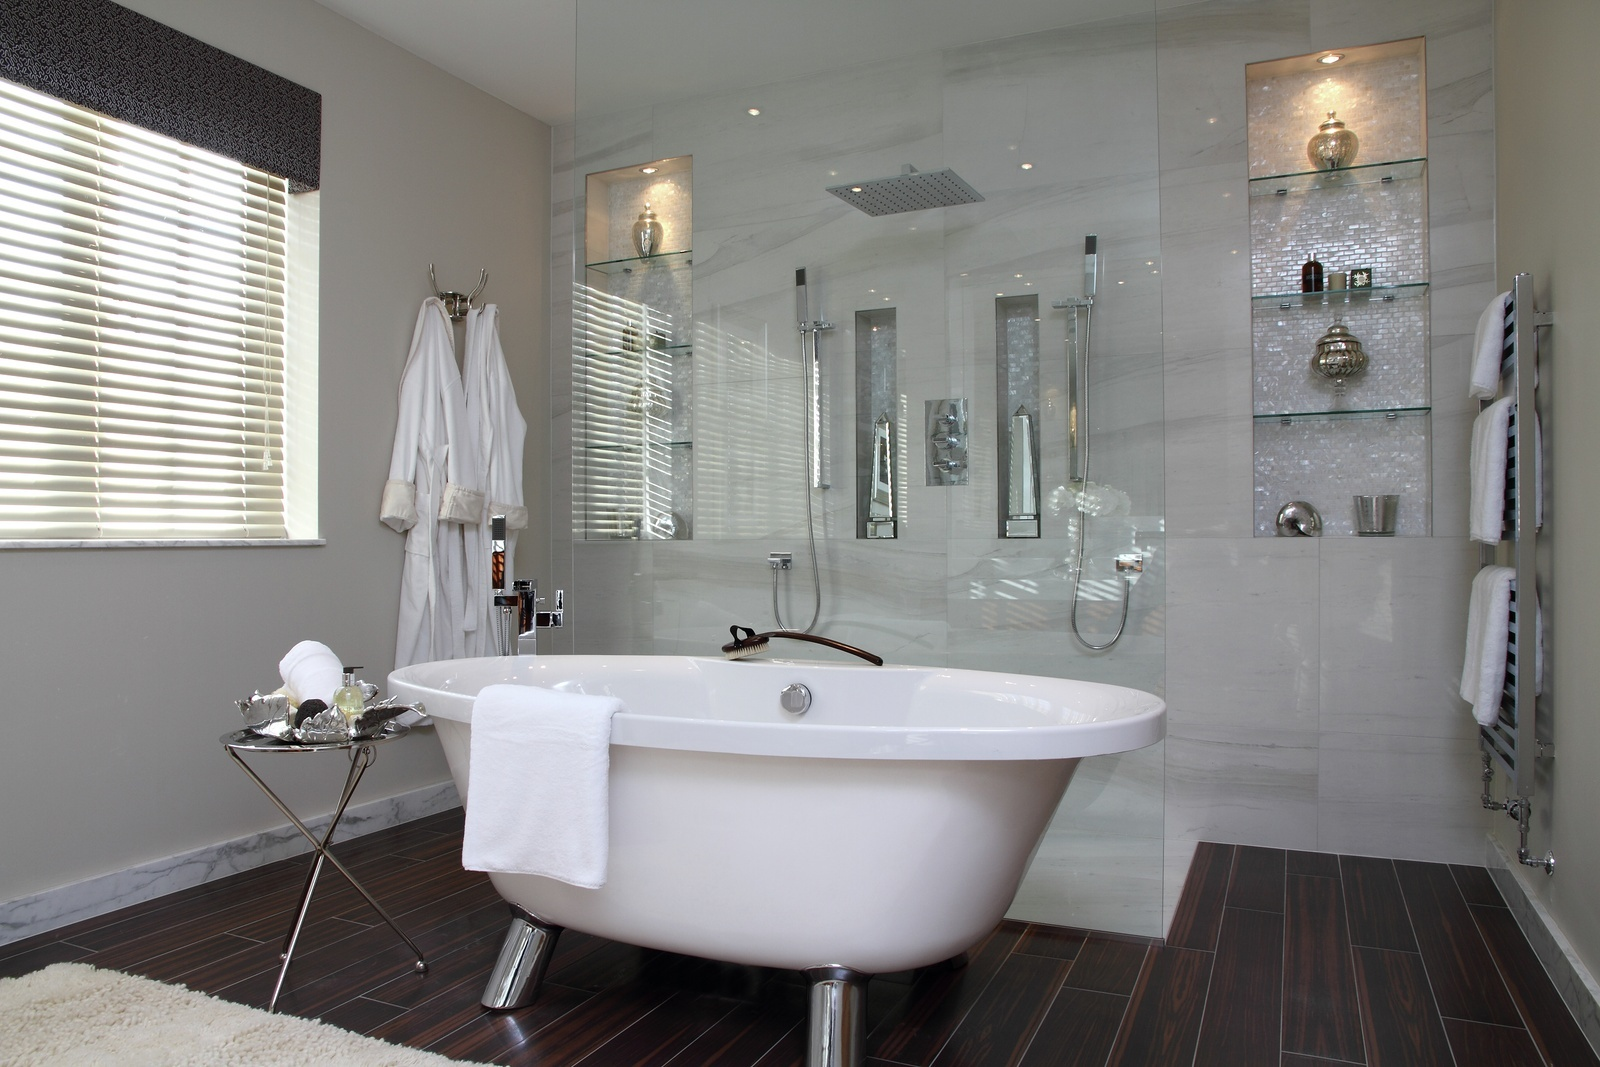 Avocado Bathroom Suite Revel In Your Restroom Millgate Introduces The Man Throne Millgate